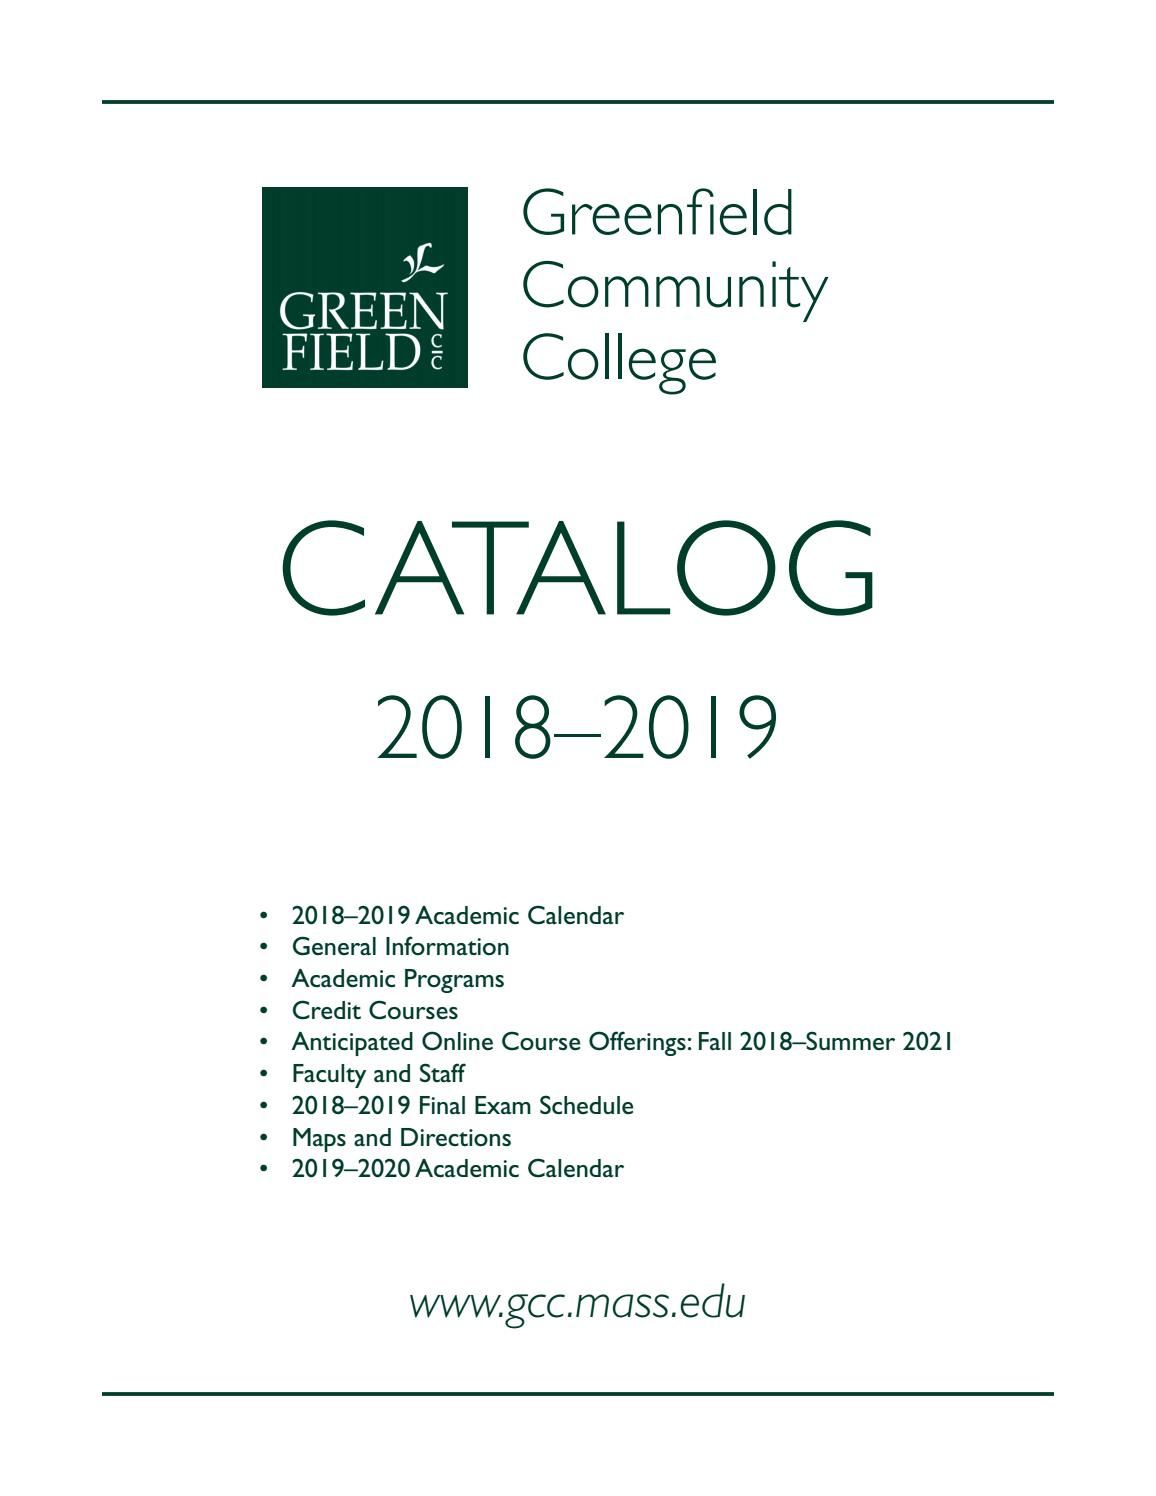 2018 19 Gcc Cataloggreenfield Community College – Issuu Regarding Eastern Connecticut State University Calendar